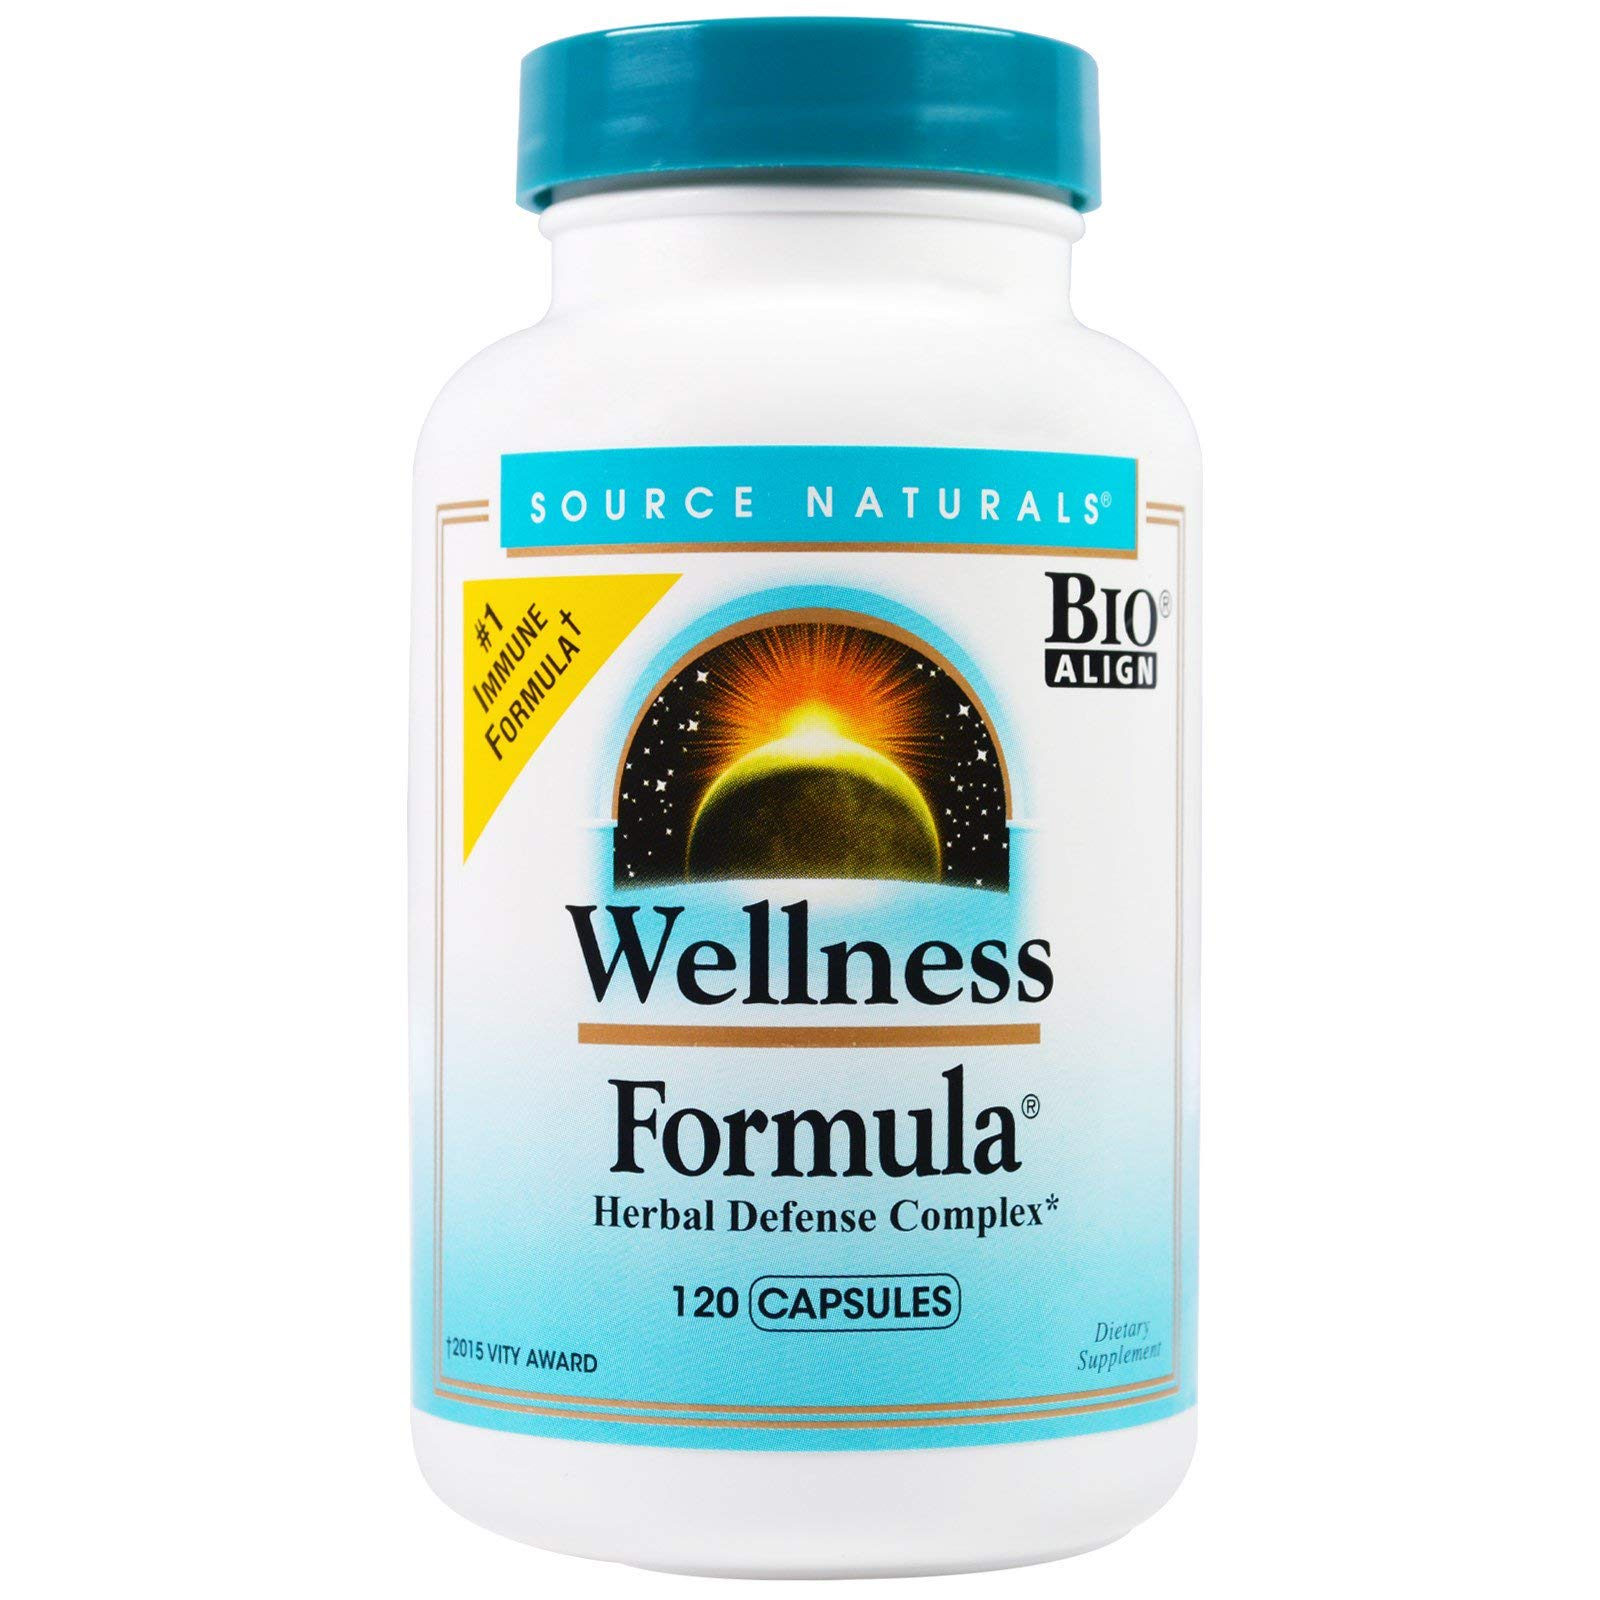 Source Naturals Wellness Formula Bio-Aligned Supplement – Herbal Defense Complex, Immune System Support & Immunity Booster – 120 Capsules